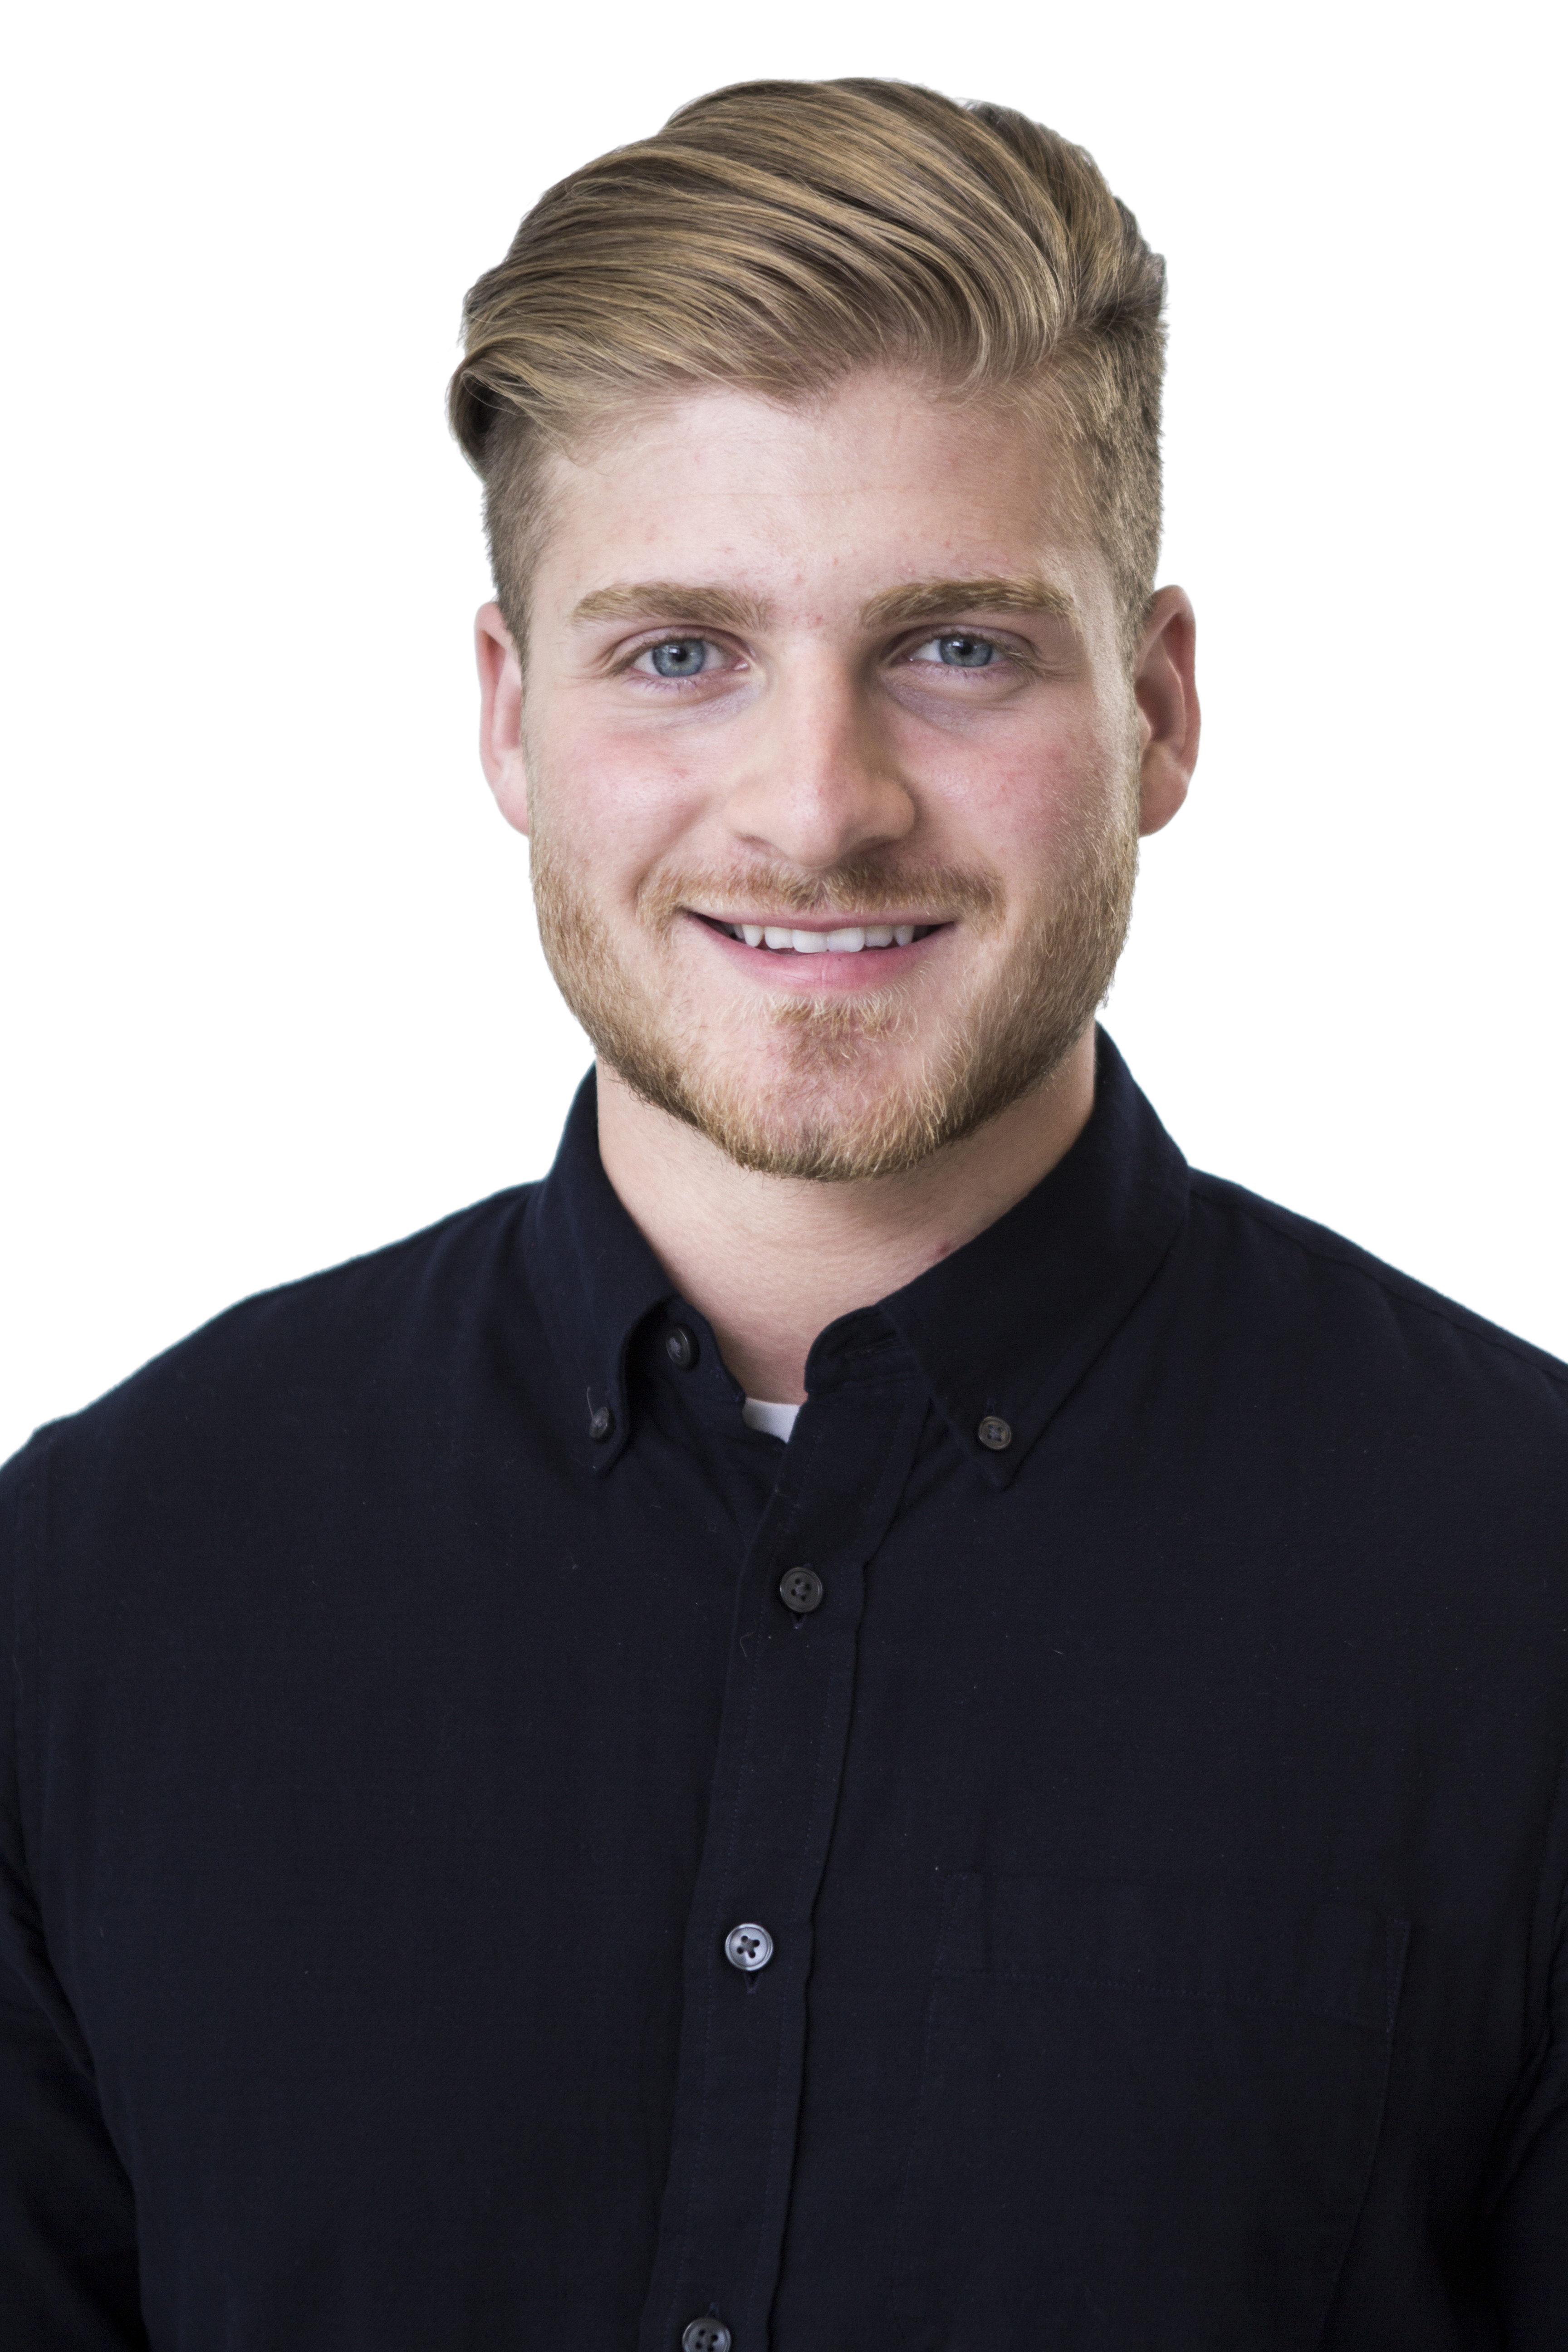 Mike Carapellucci - Assistant Sales Manager